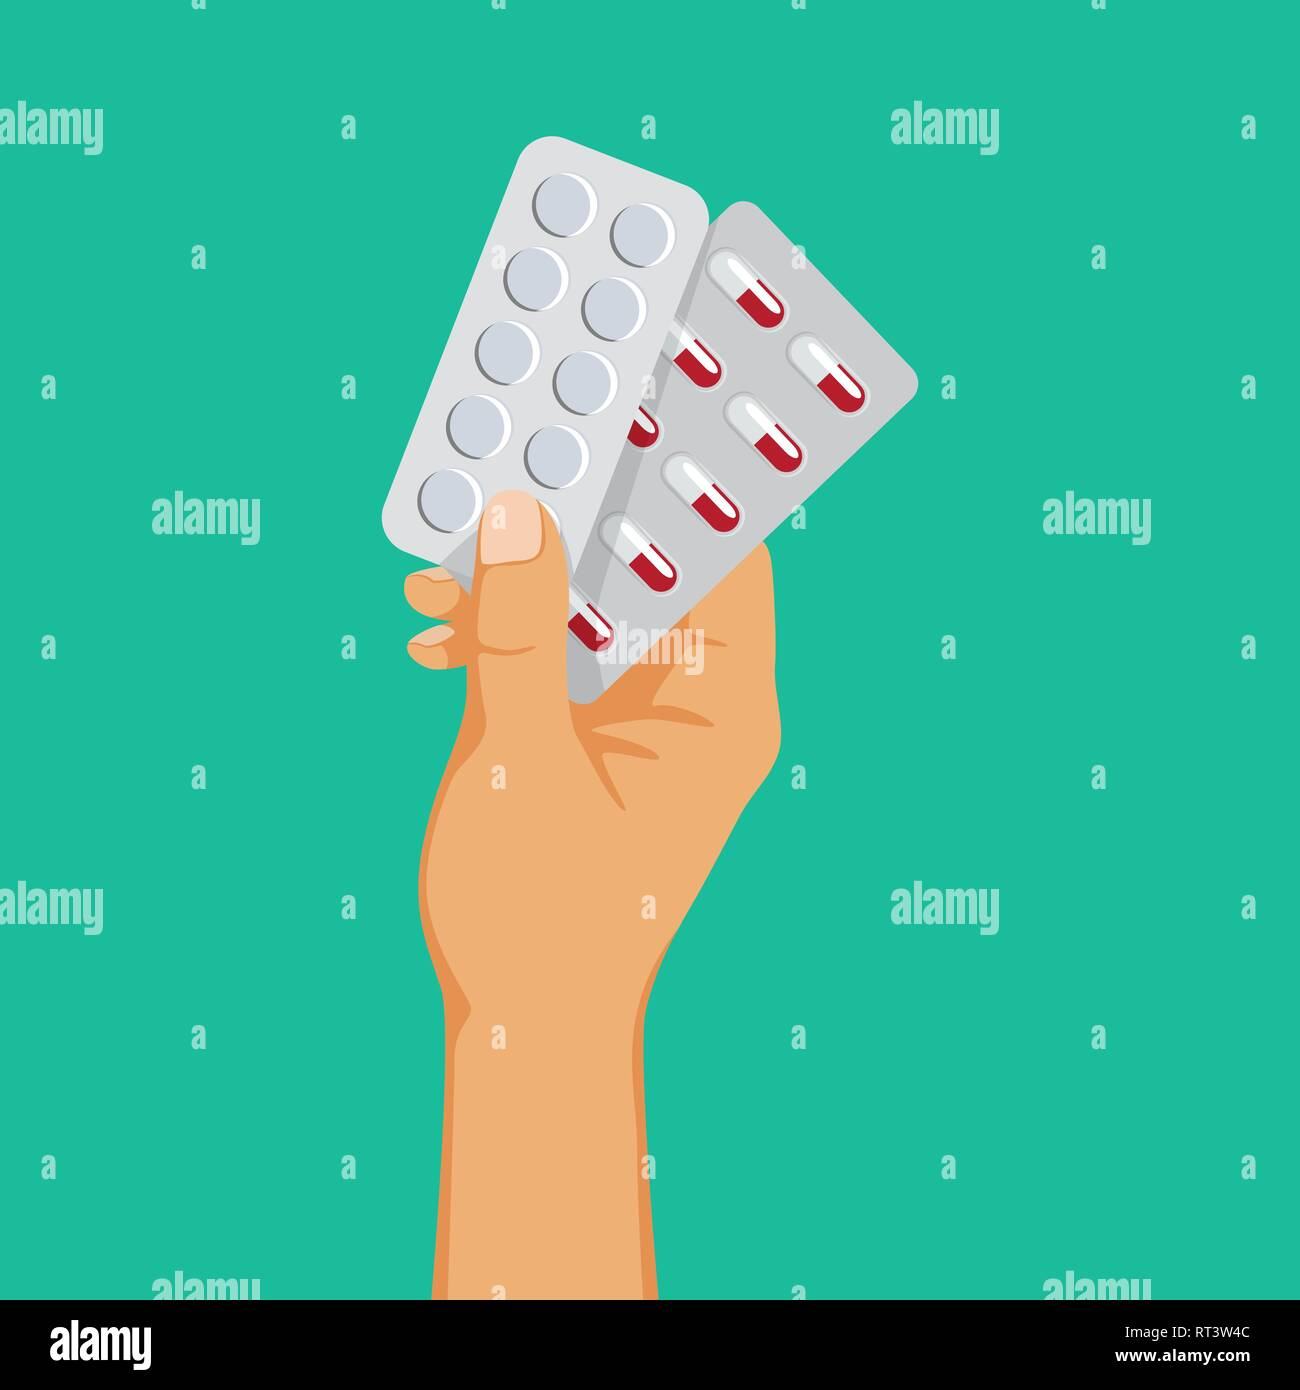 Medical drugs addiction, hand holding blisters with pills, antidepressant dependence, vector illustration. - Stock Image